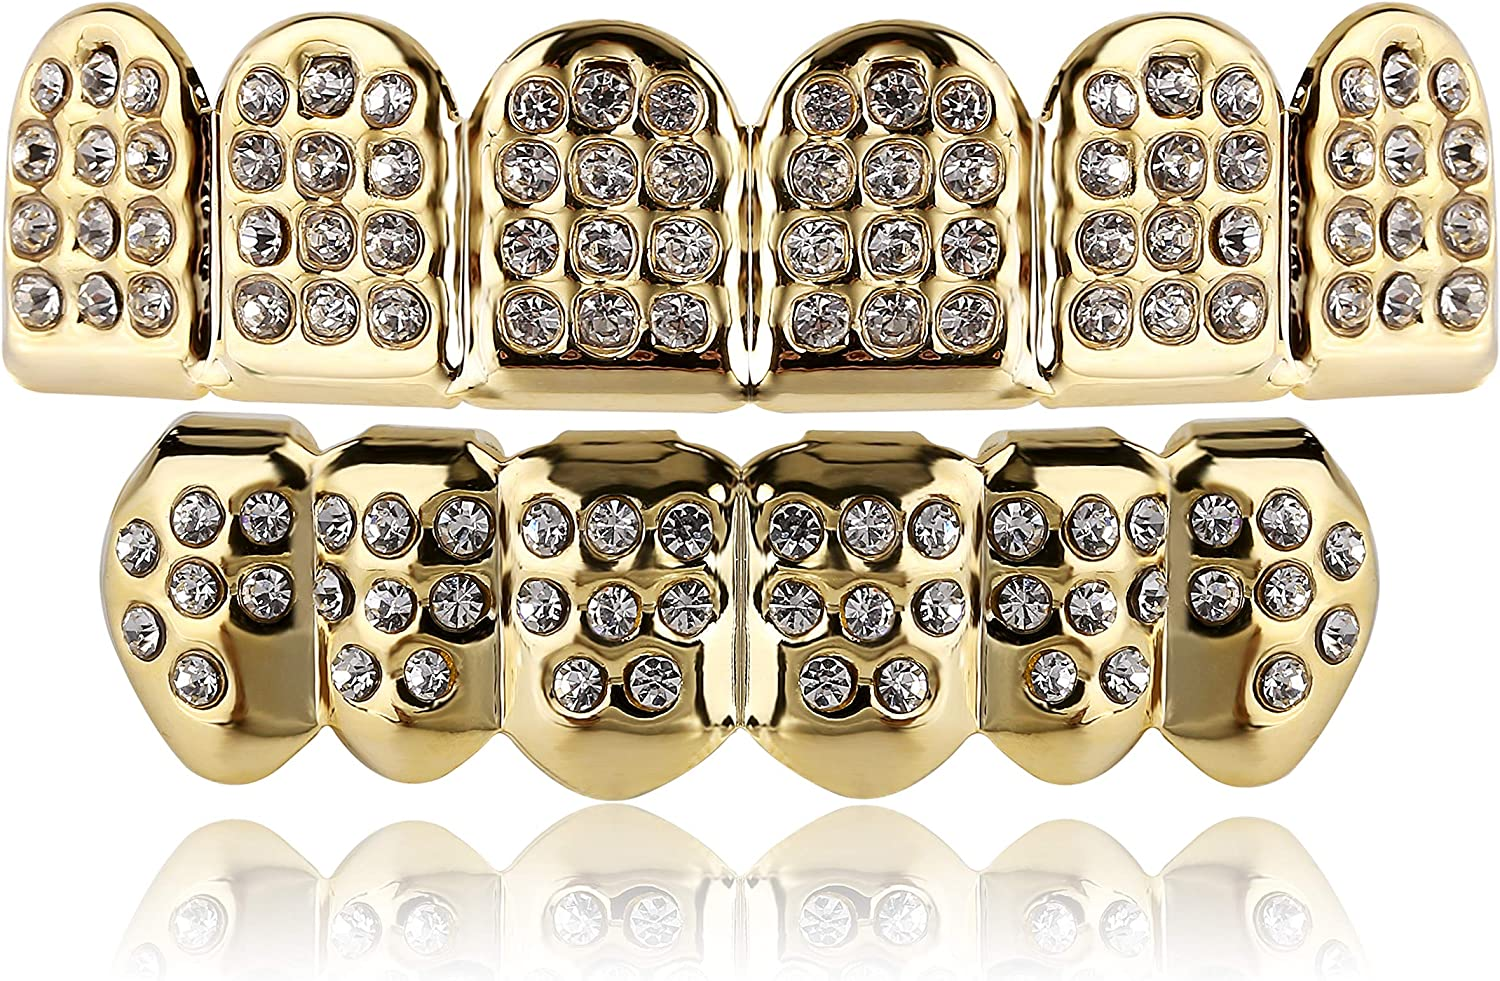 TOPGRILLZ 14K Gold and Silver Plated Iced Out CZ Diamond Top and Bottom Grills for Your Teeth Men Women Hip Hop Jewelry